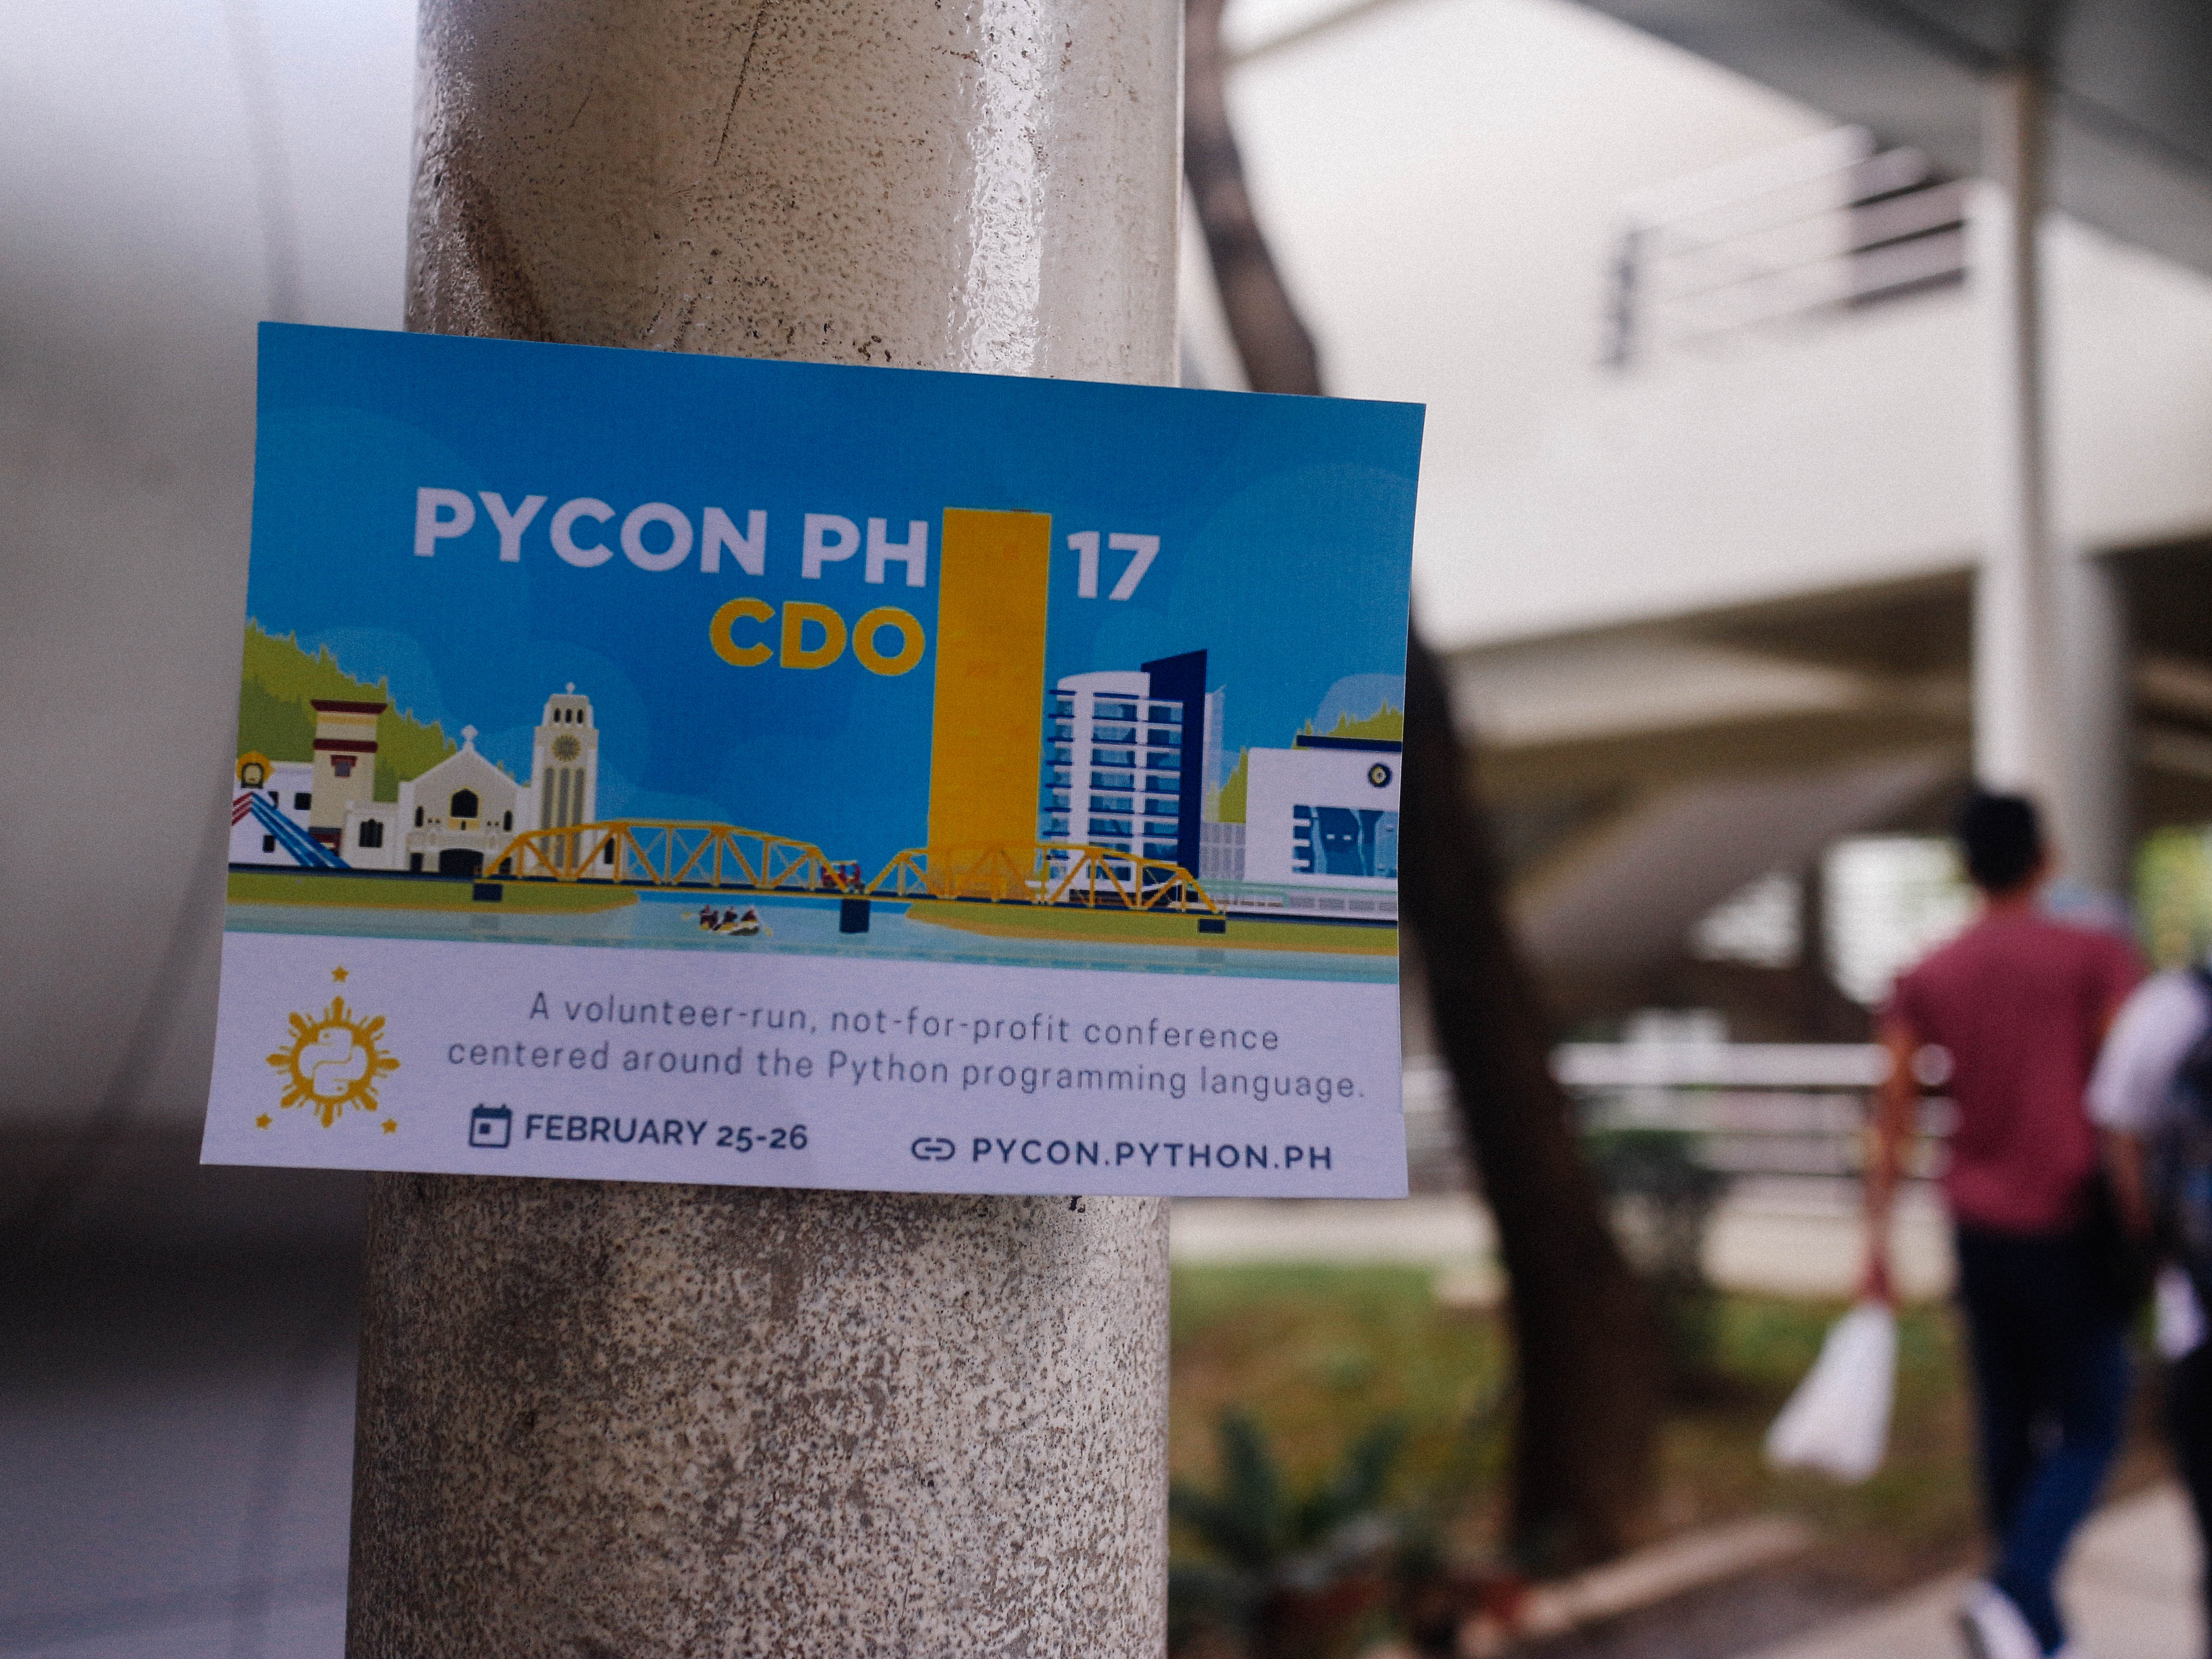 PyCon Philippines, the organizers of the event, calls their group as a volunteer-run, not-for-profit conference centered around the Python Programming language.